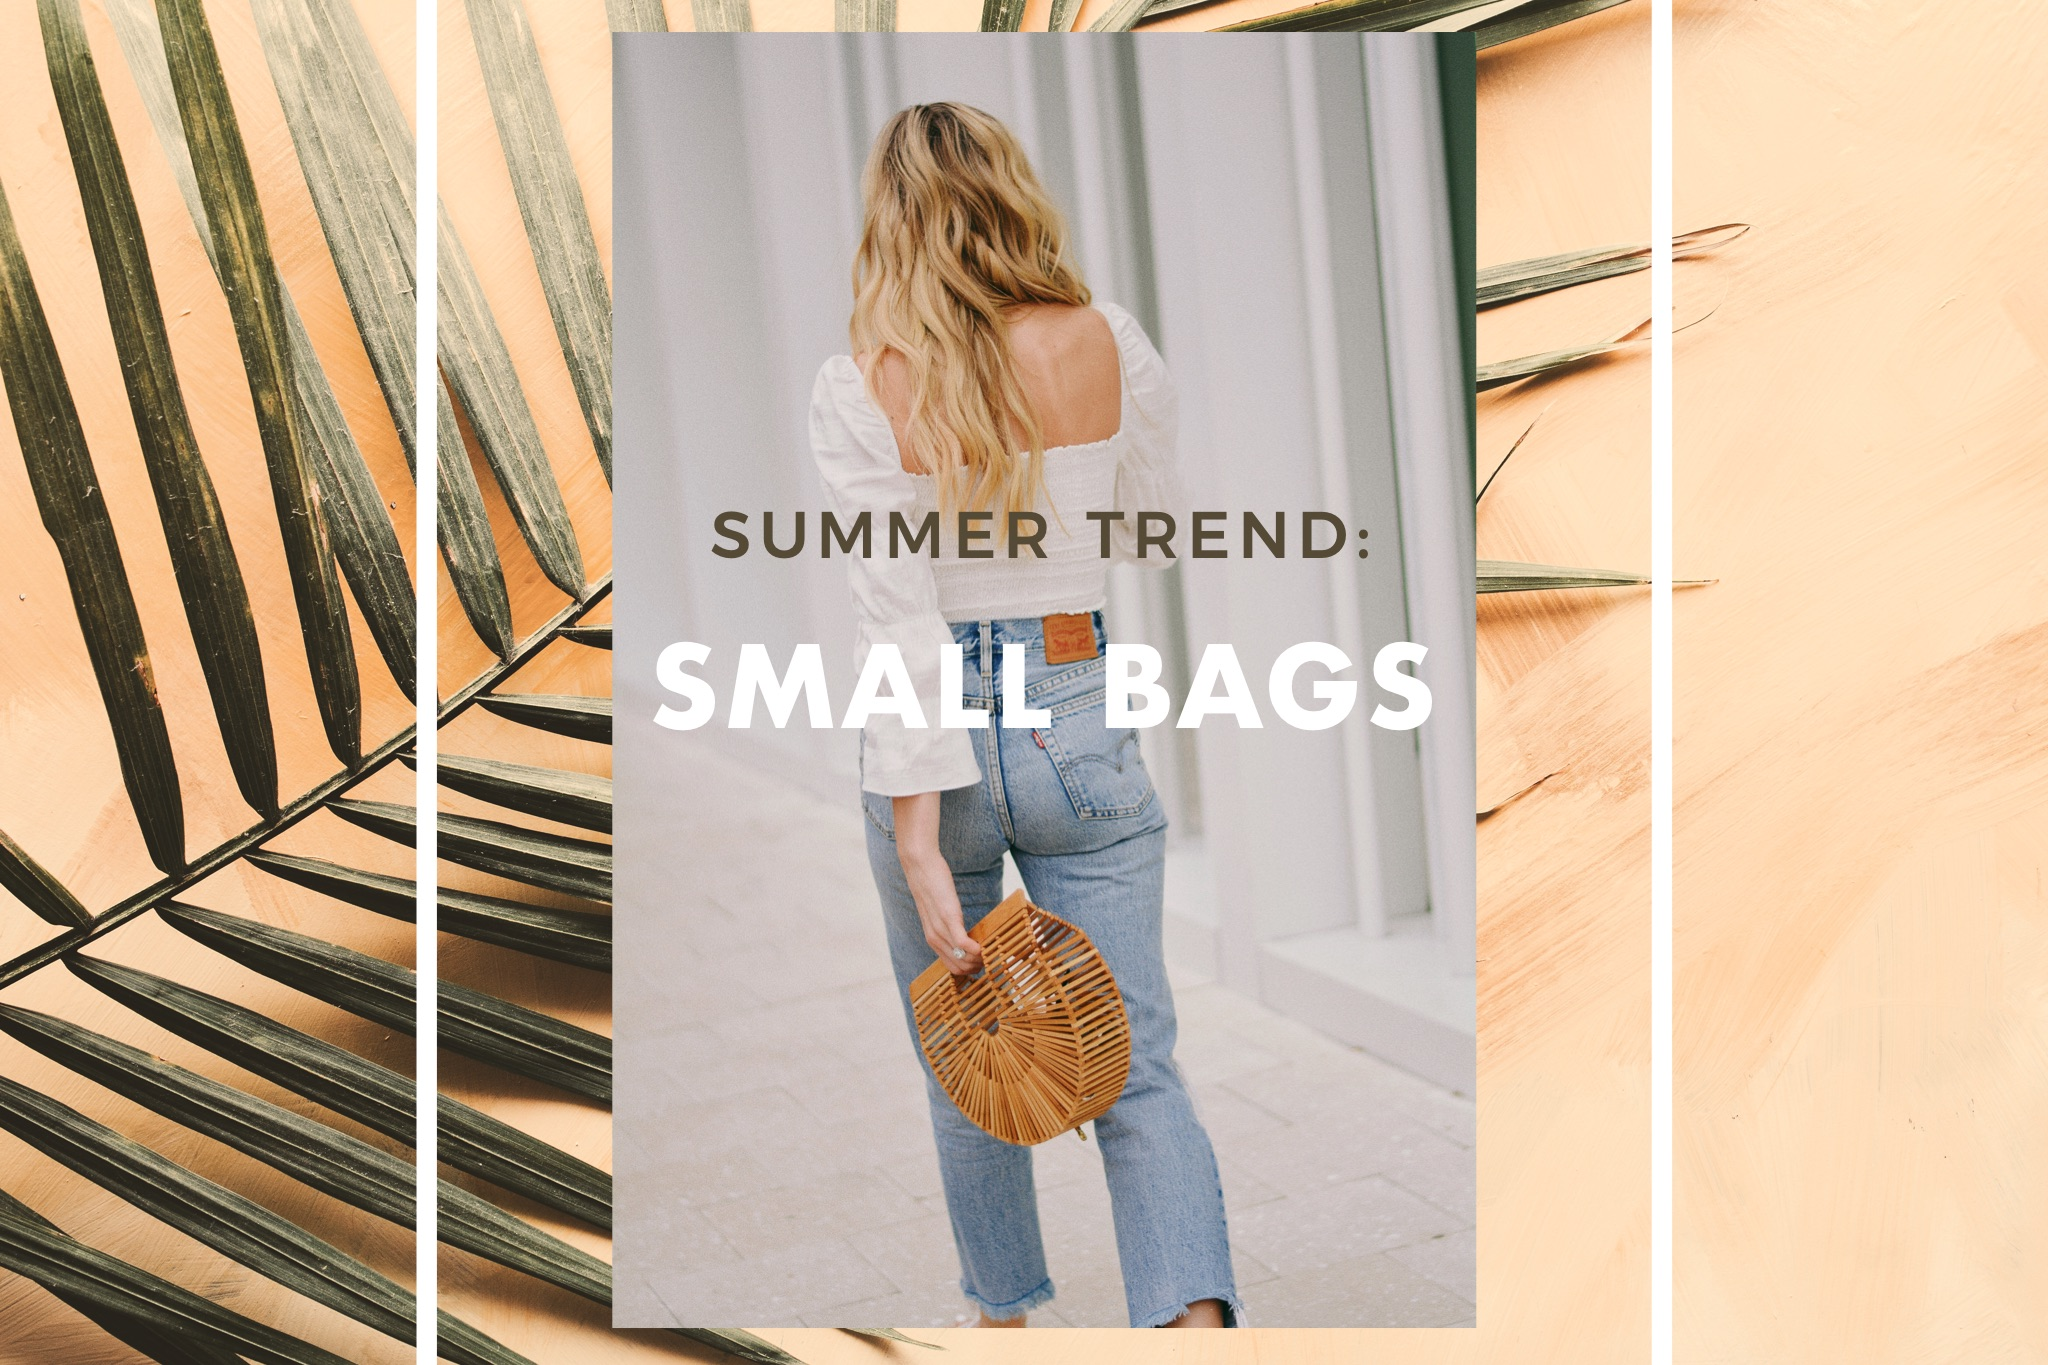 nastia_liukin_summer_bags_shopping_outfit_travel